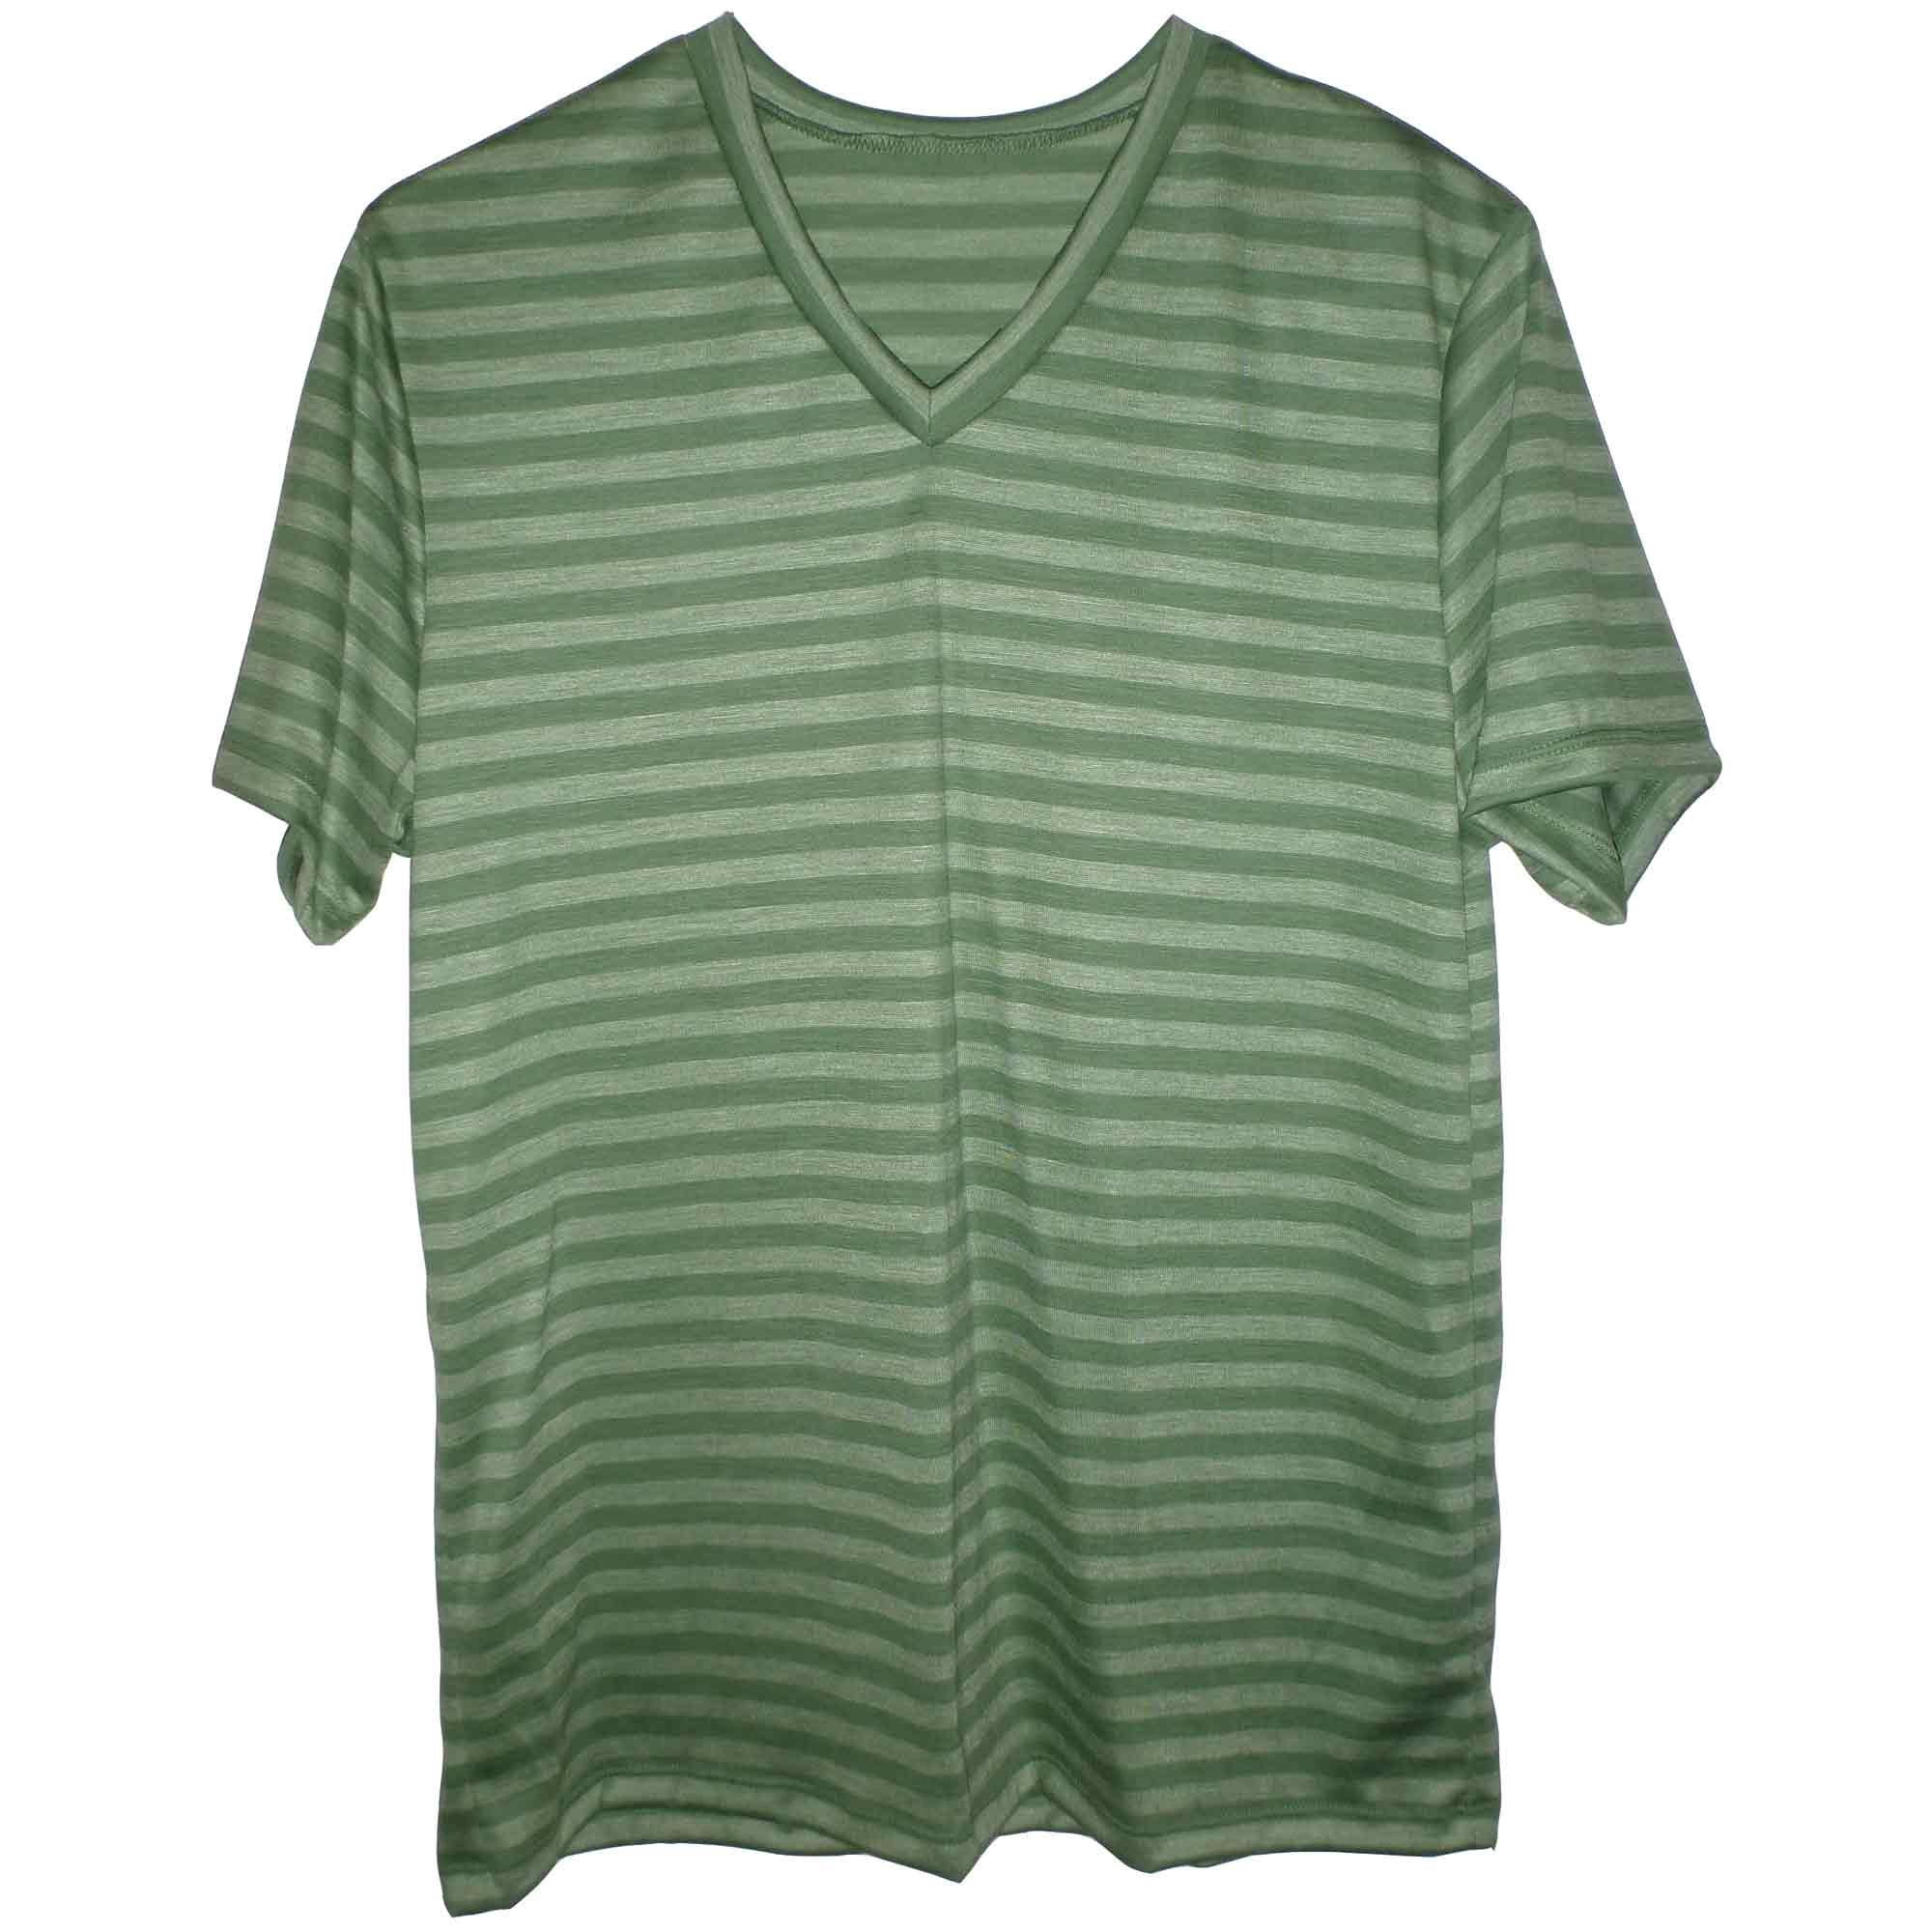 Green merino v-neck